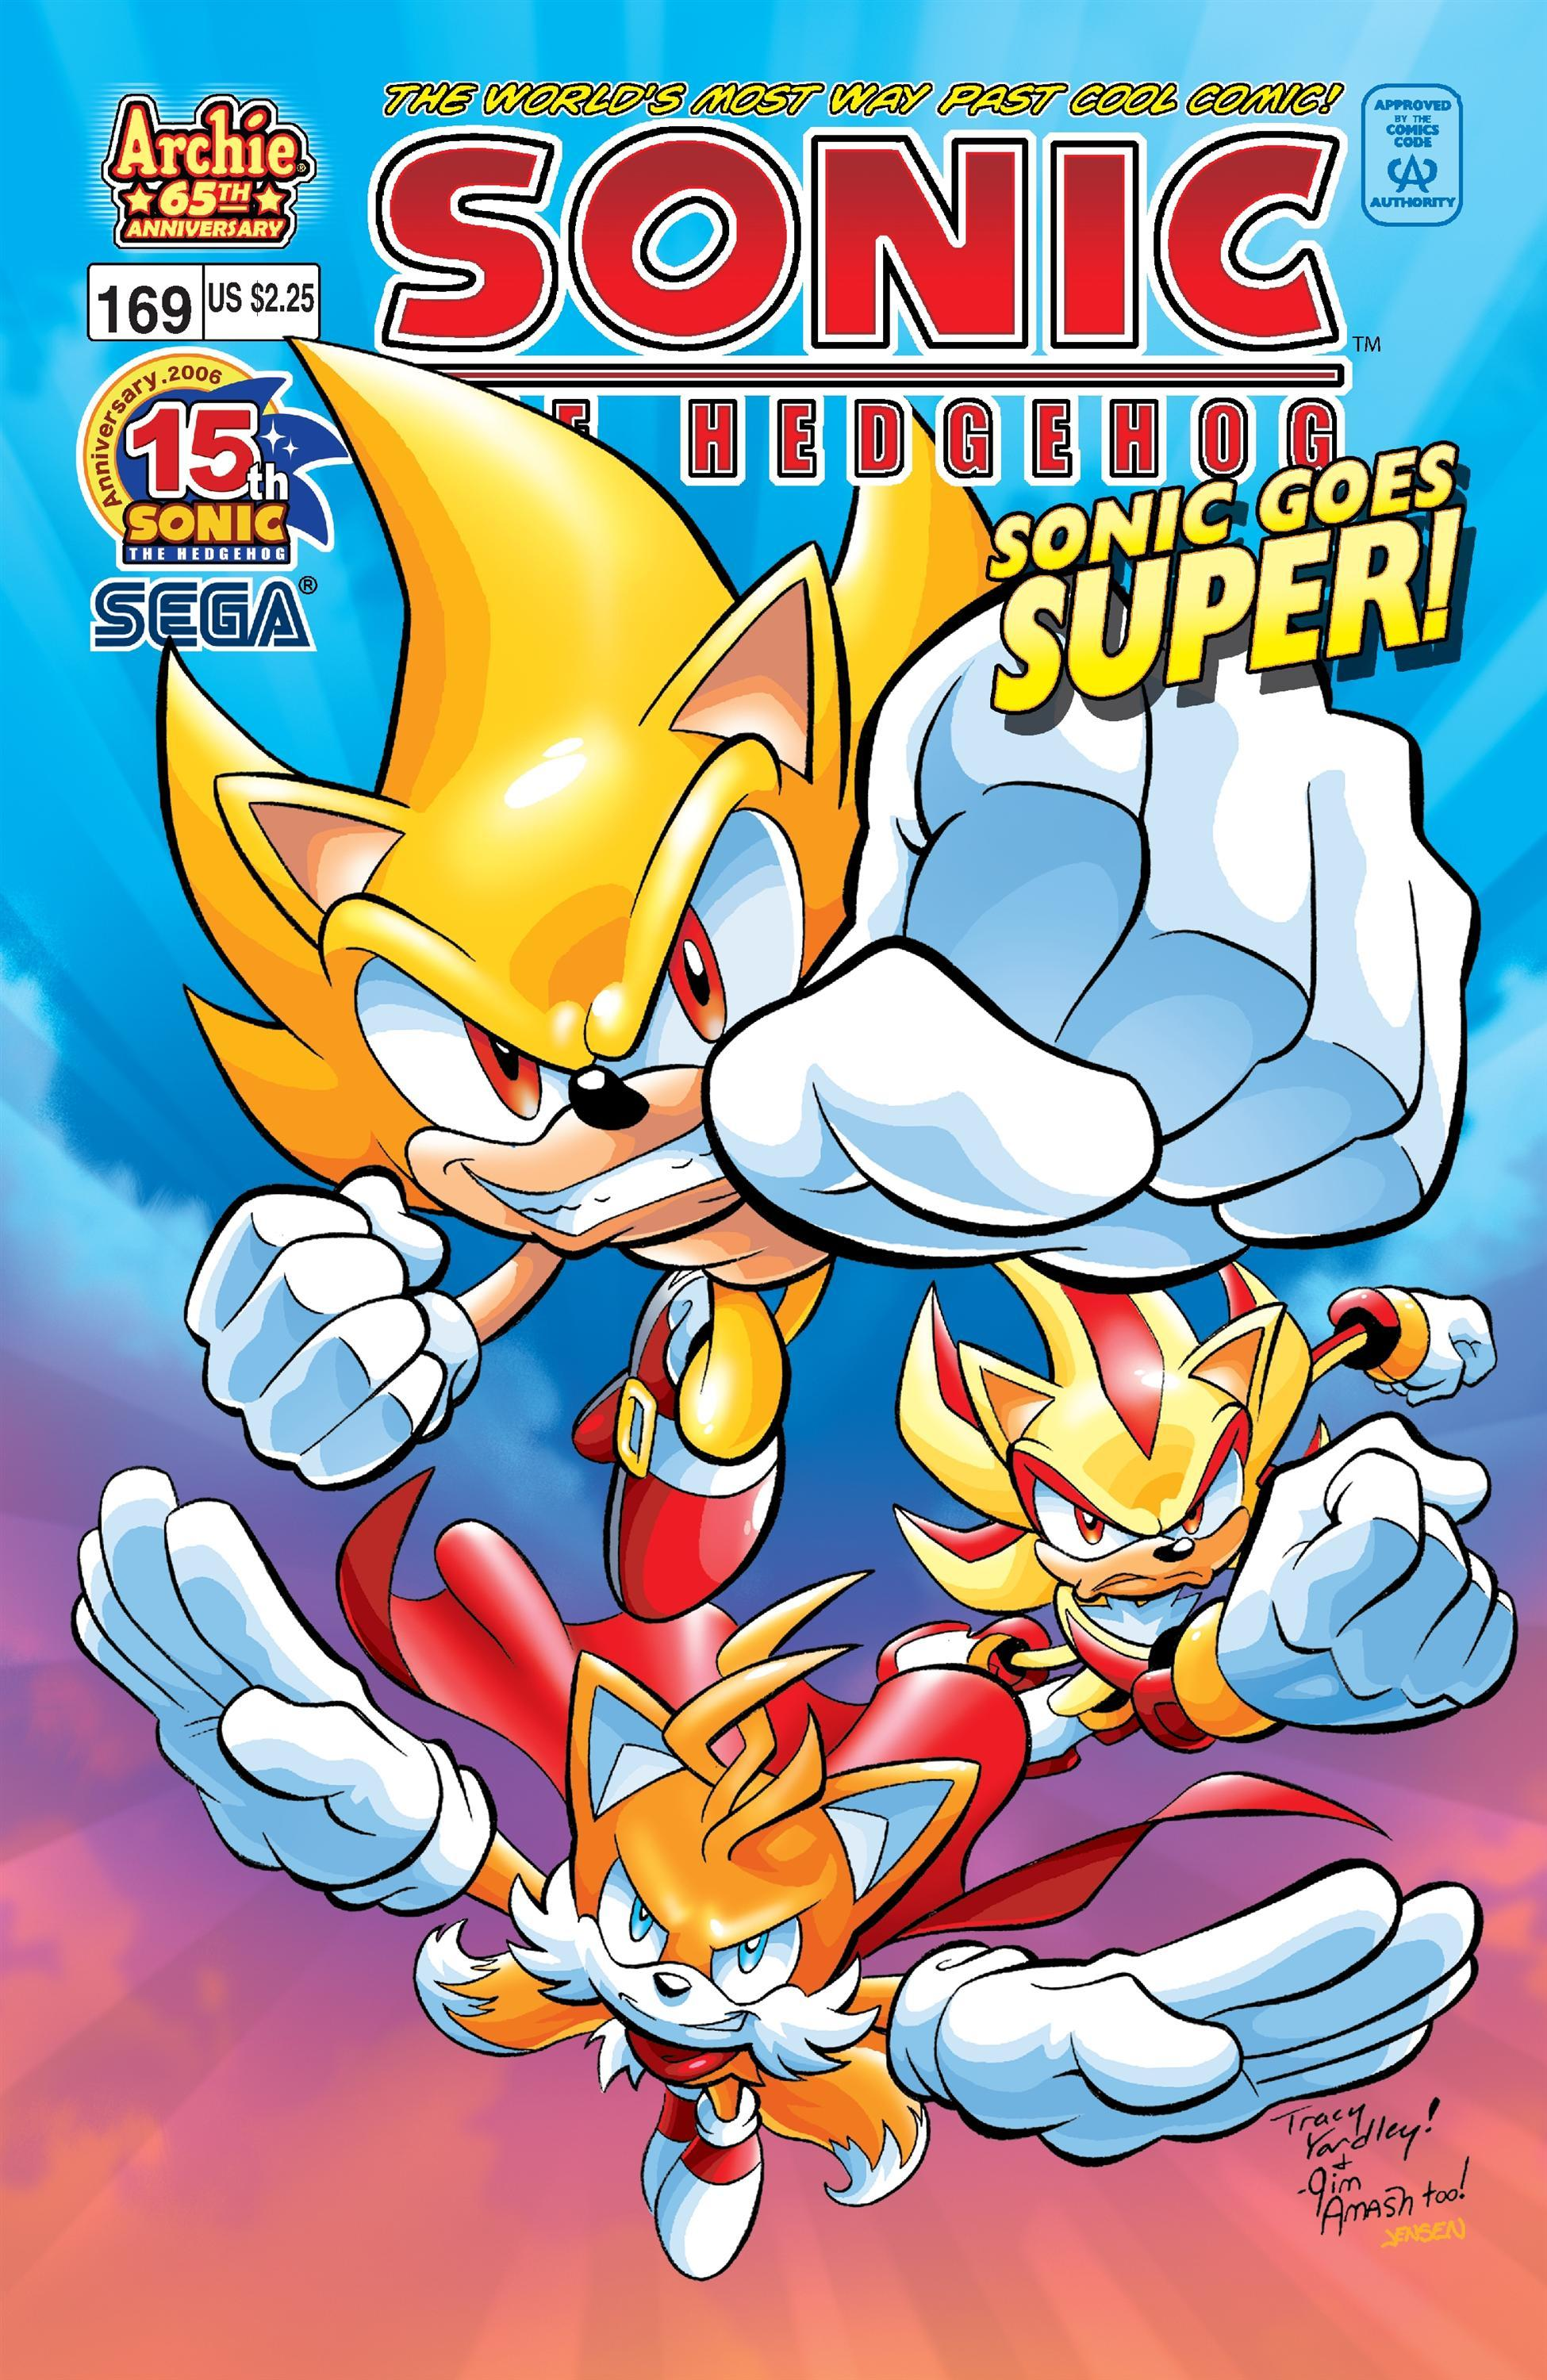 Archie Sonic the Hedgehog Issue 169